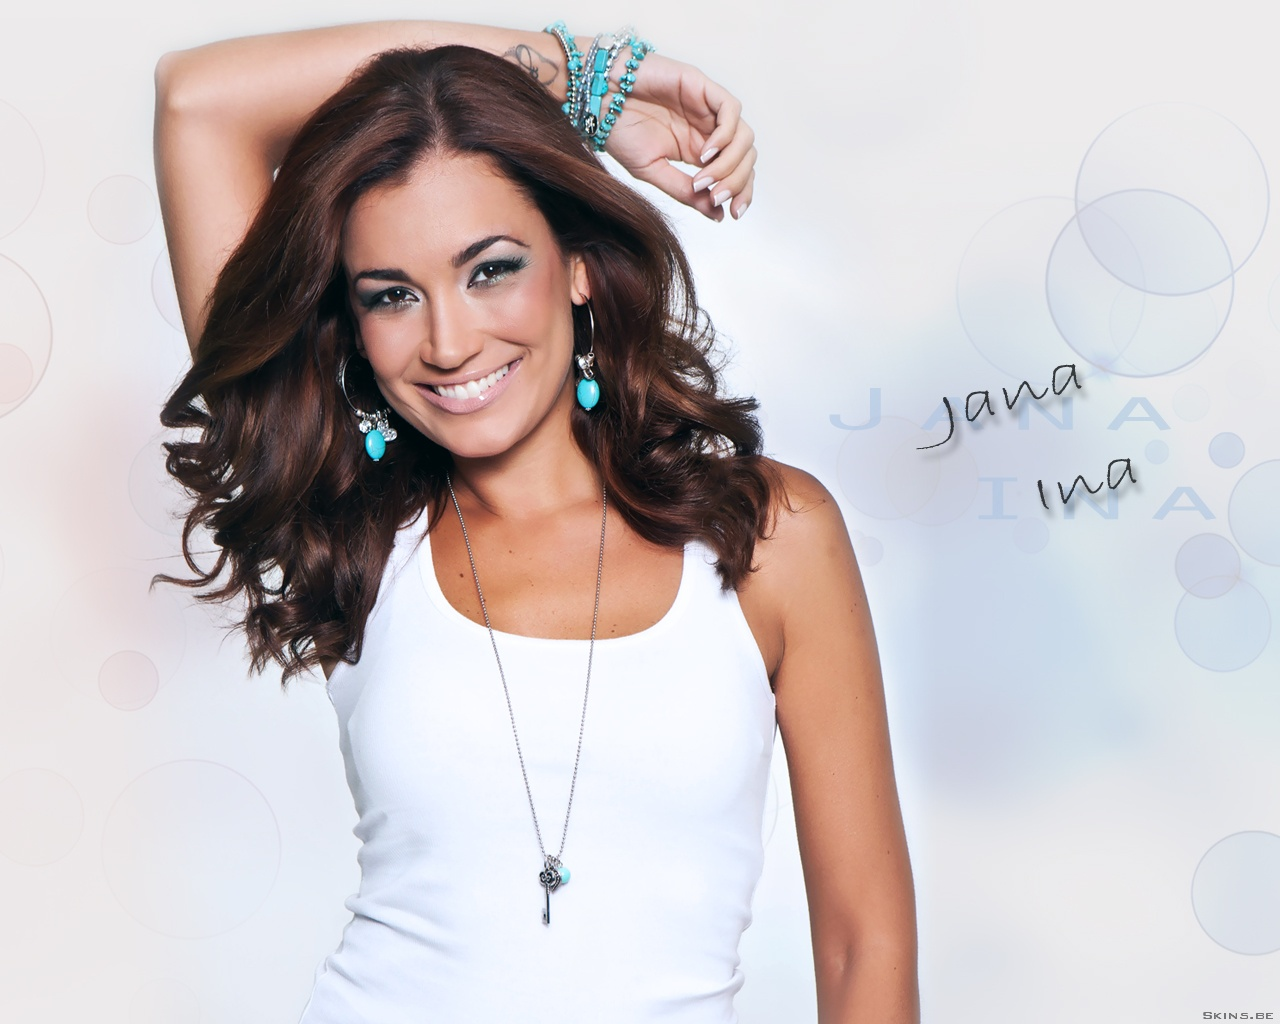 Jana Ina wallpaper (#41023)